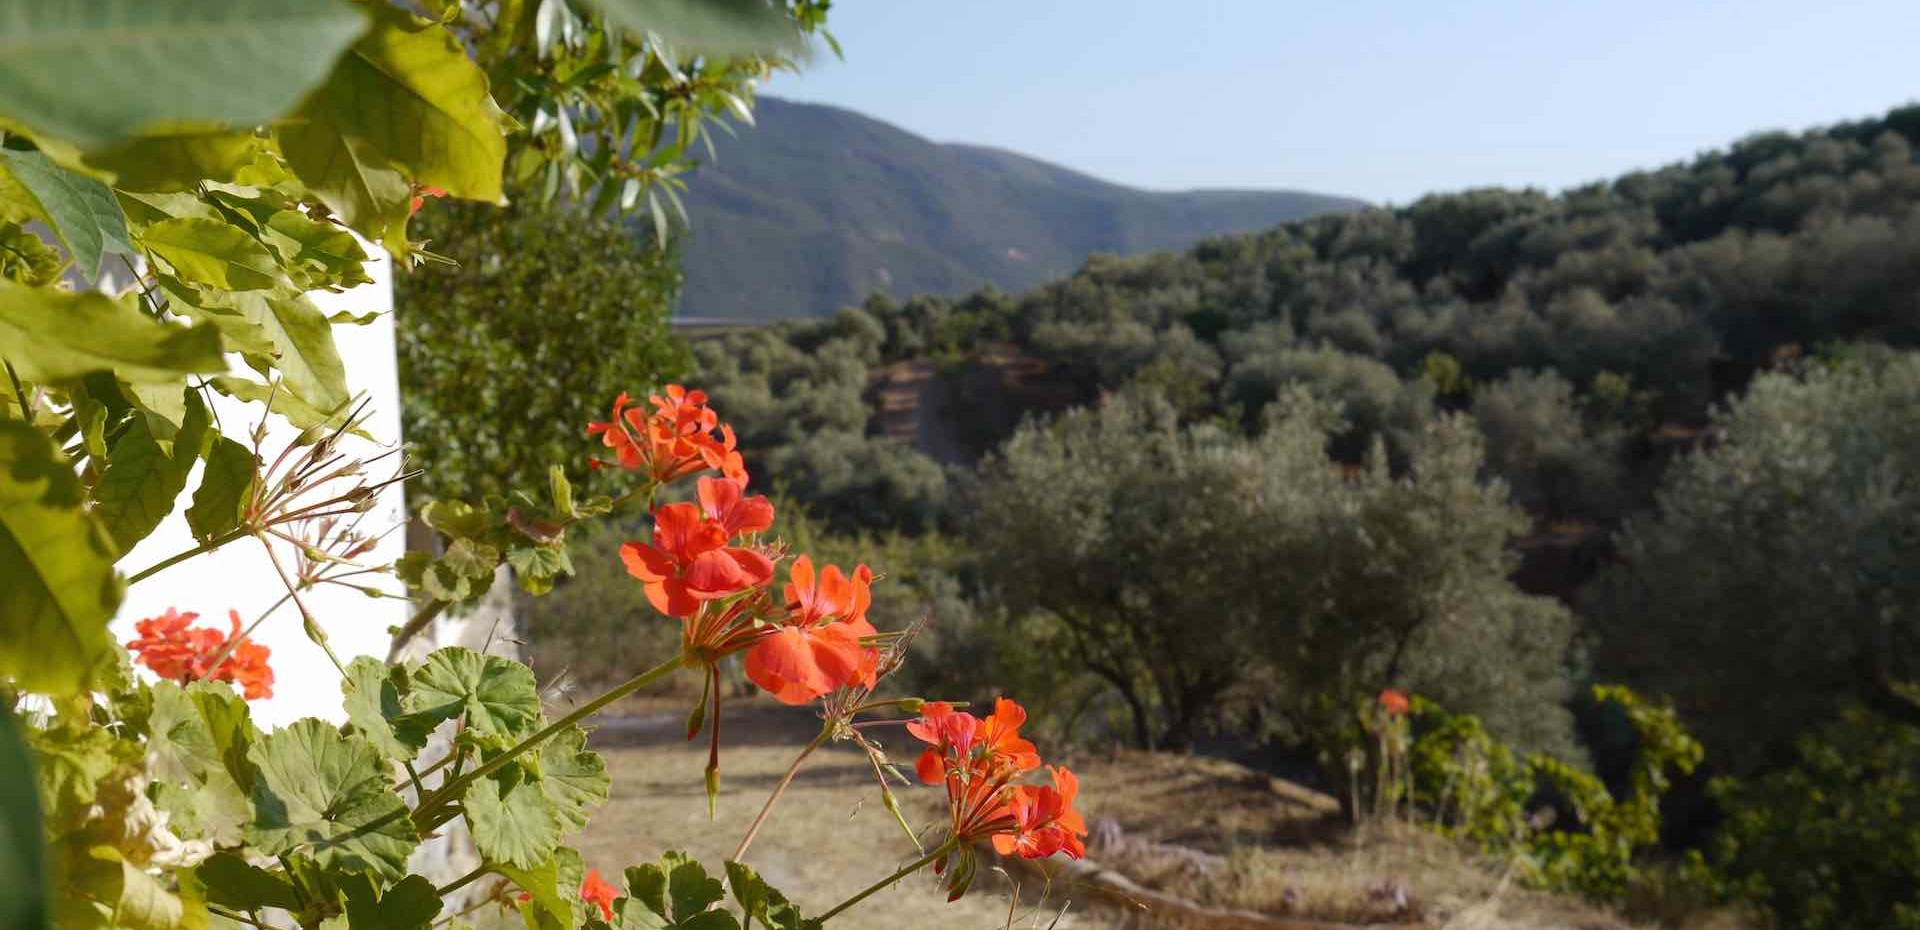 Olive groves at Almond Hill House, Andalucia, Spain